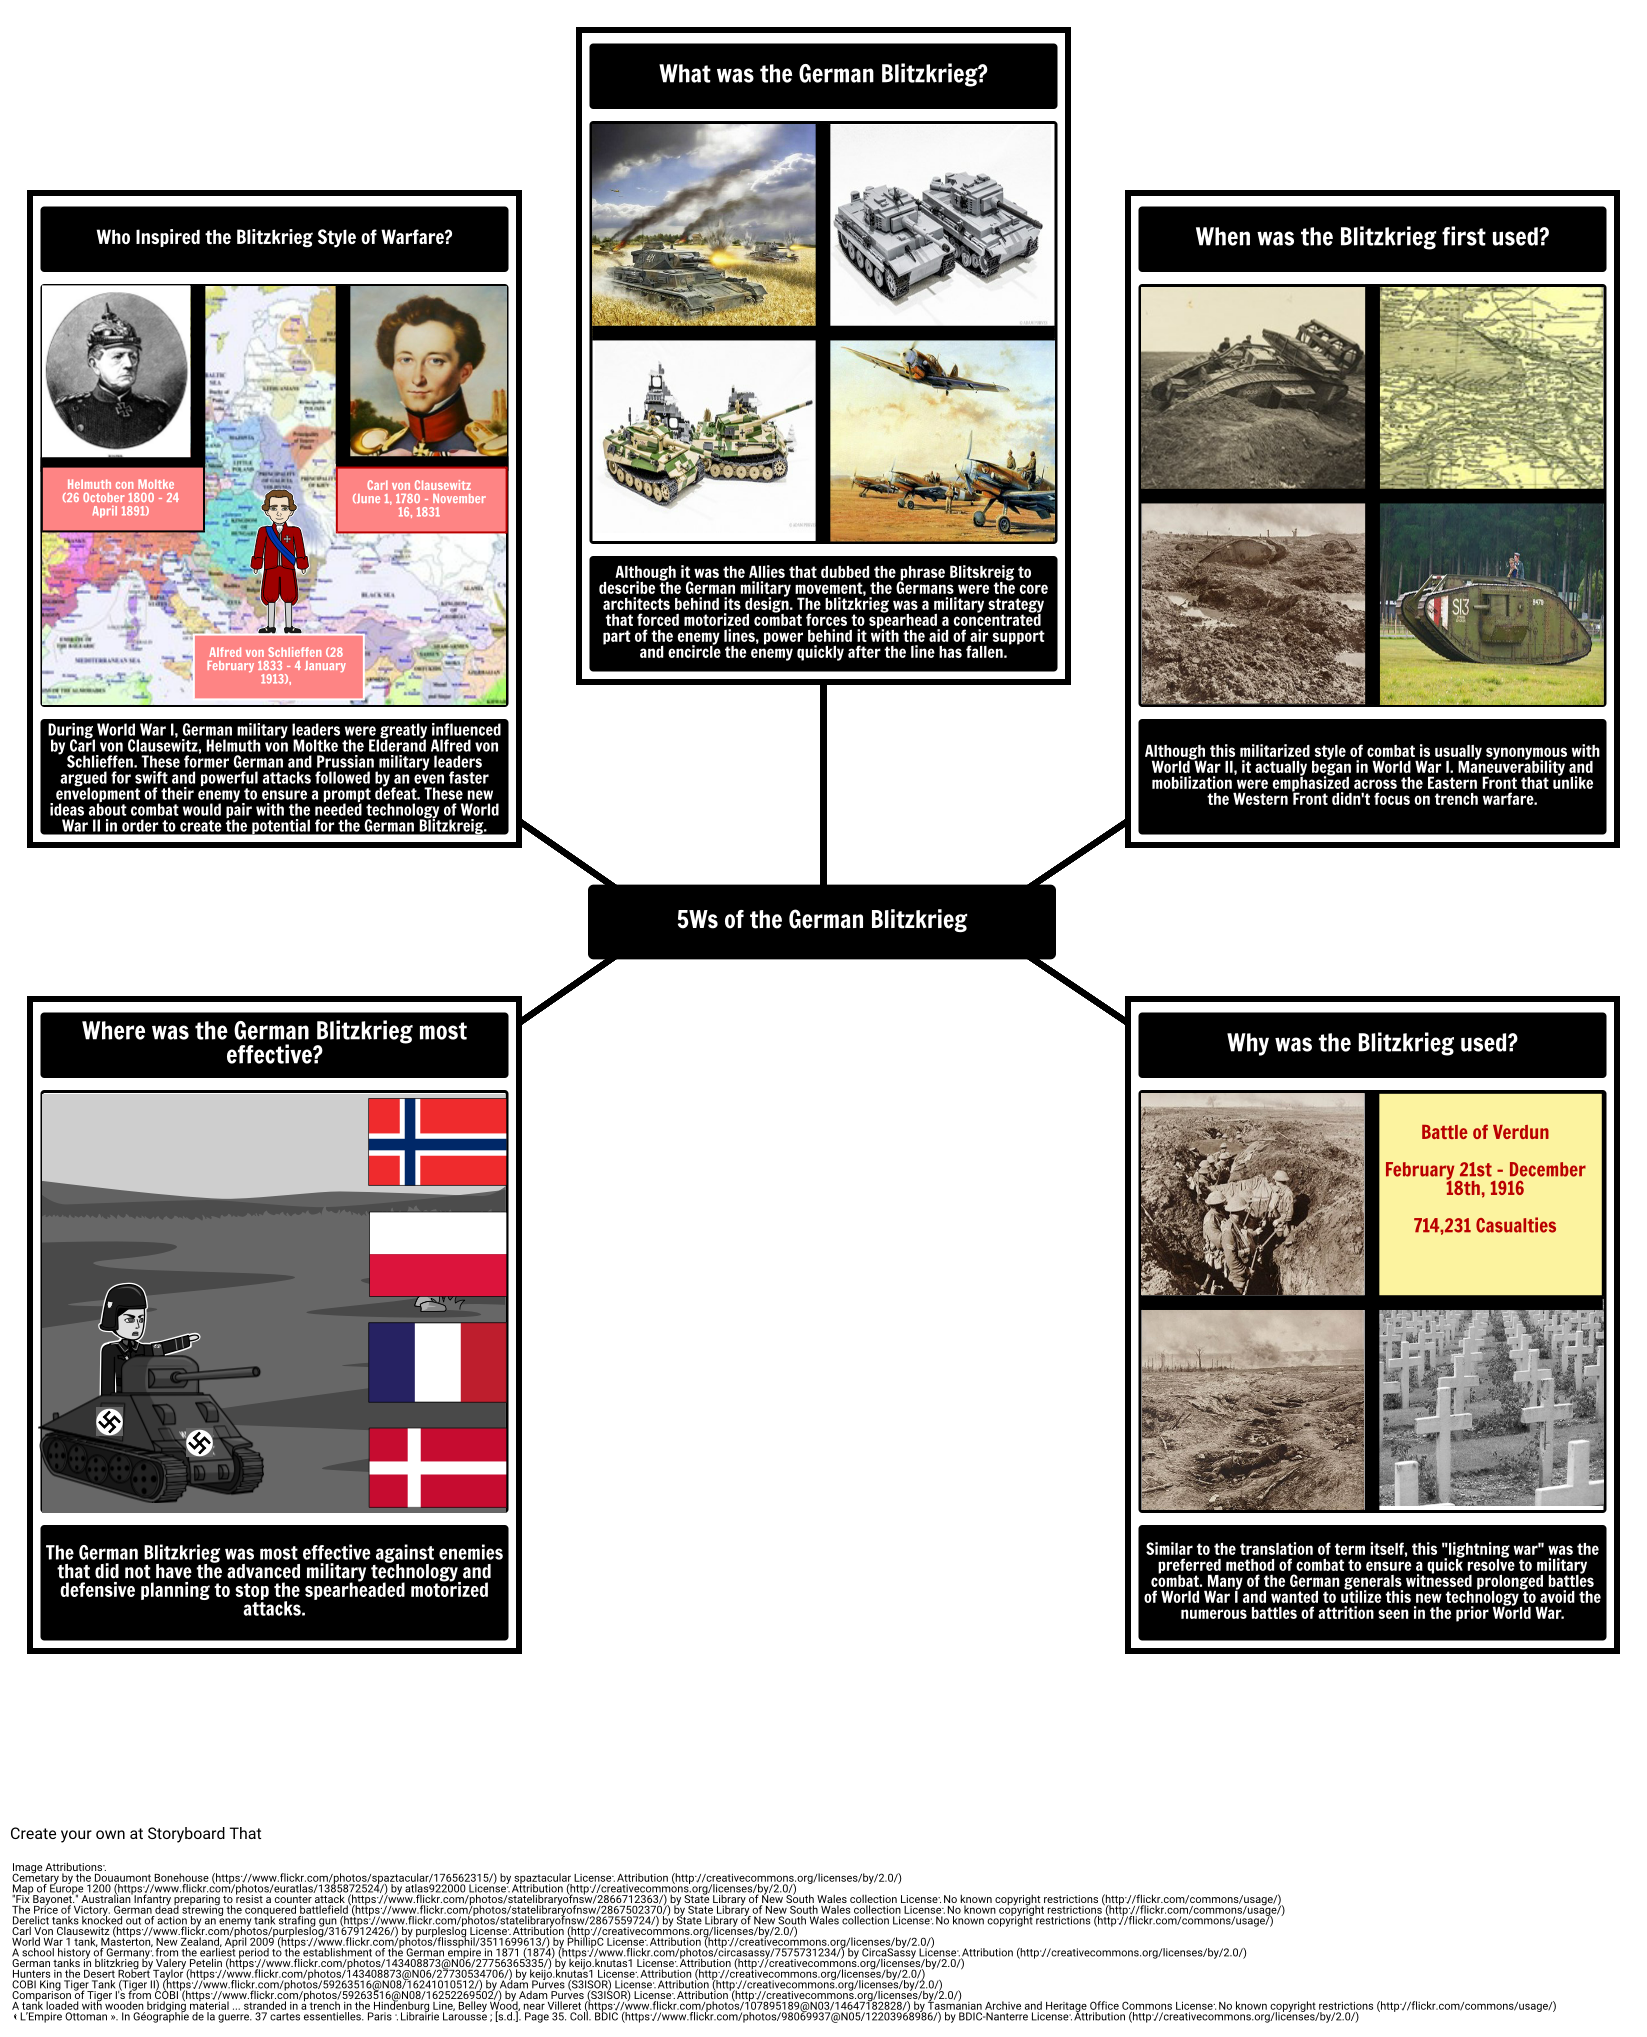 World war ii 1939 1941 understanding the german blitzkrieg world war ii 1939 1941 understanding the german blitzkrieg blitzkrieg was a key event during ww2 students can use a spider map graphic organizer to gumiabroncs Image collections